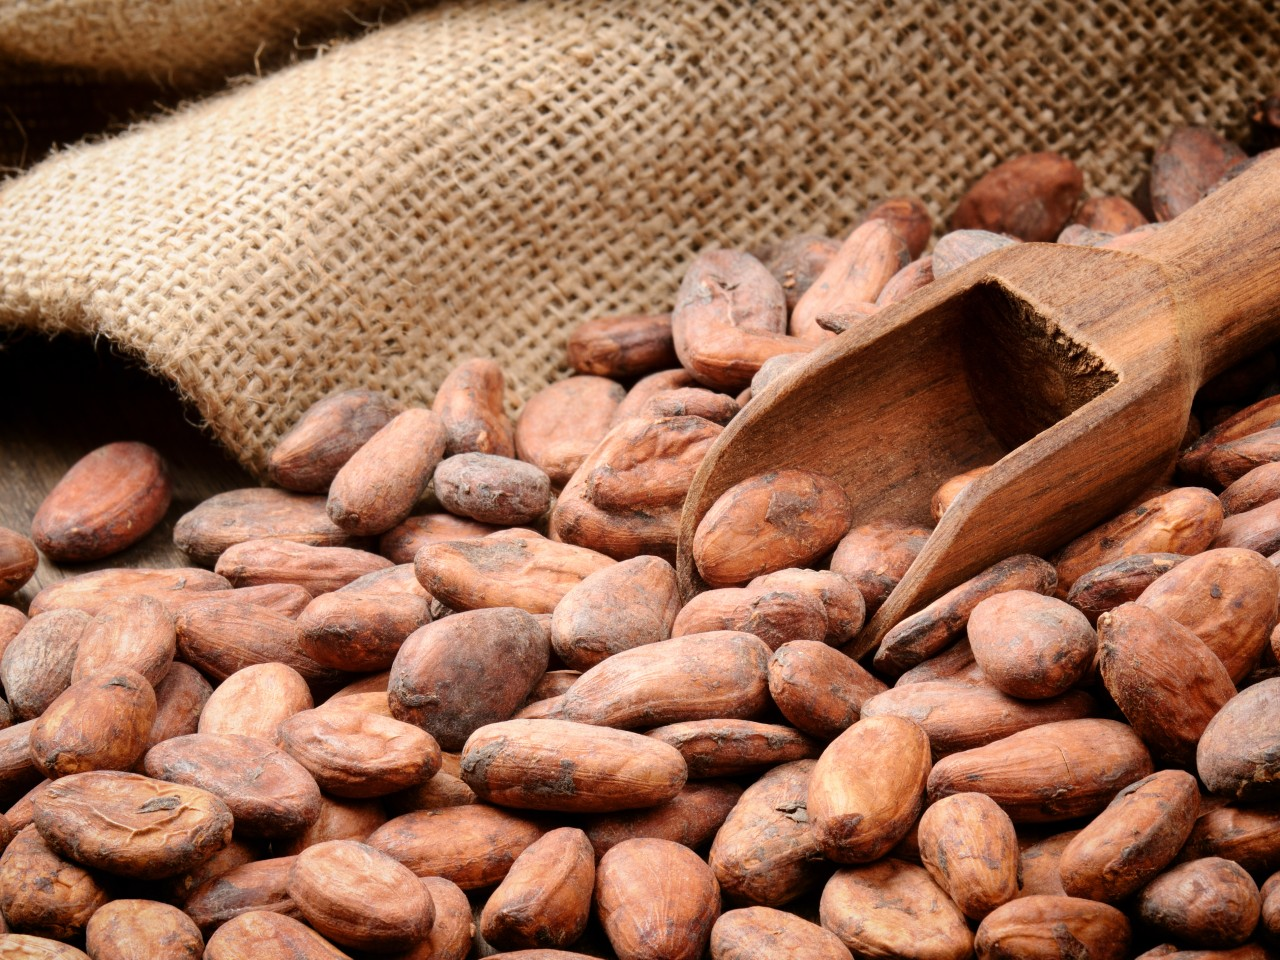 Callebaut licenses cocoa claim to Naturex